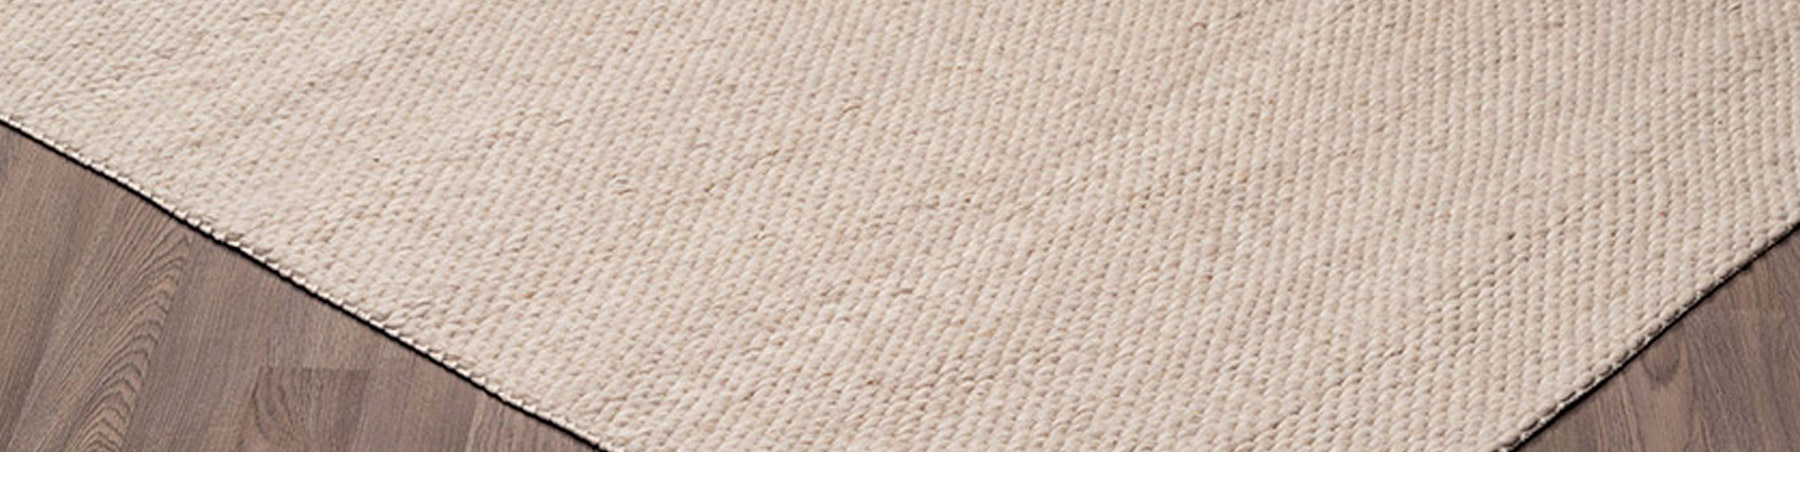 Exquisite Berber Ivoire Beige - Carpette Tapis William